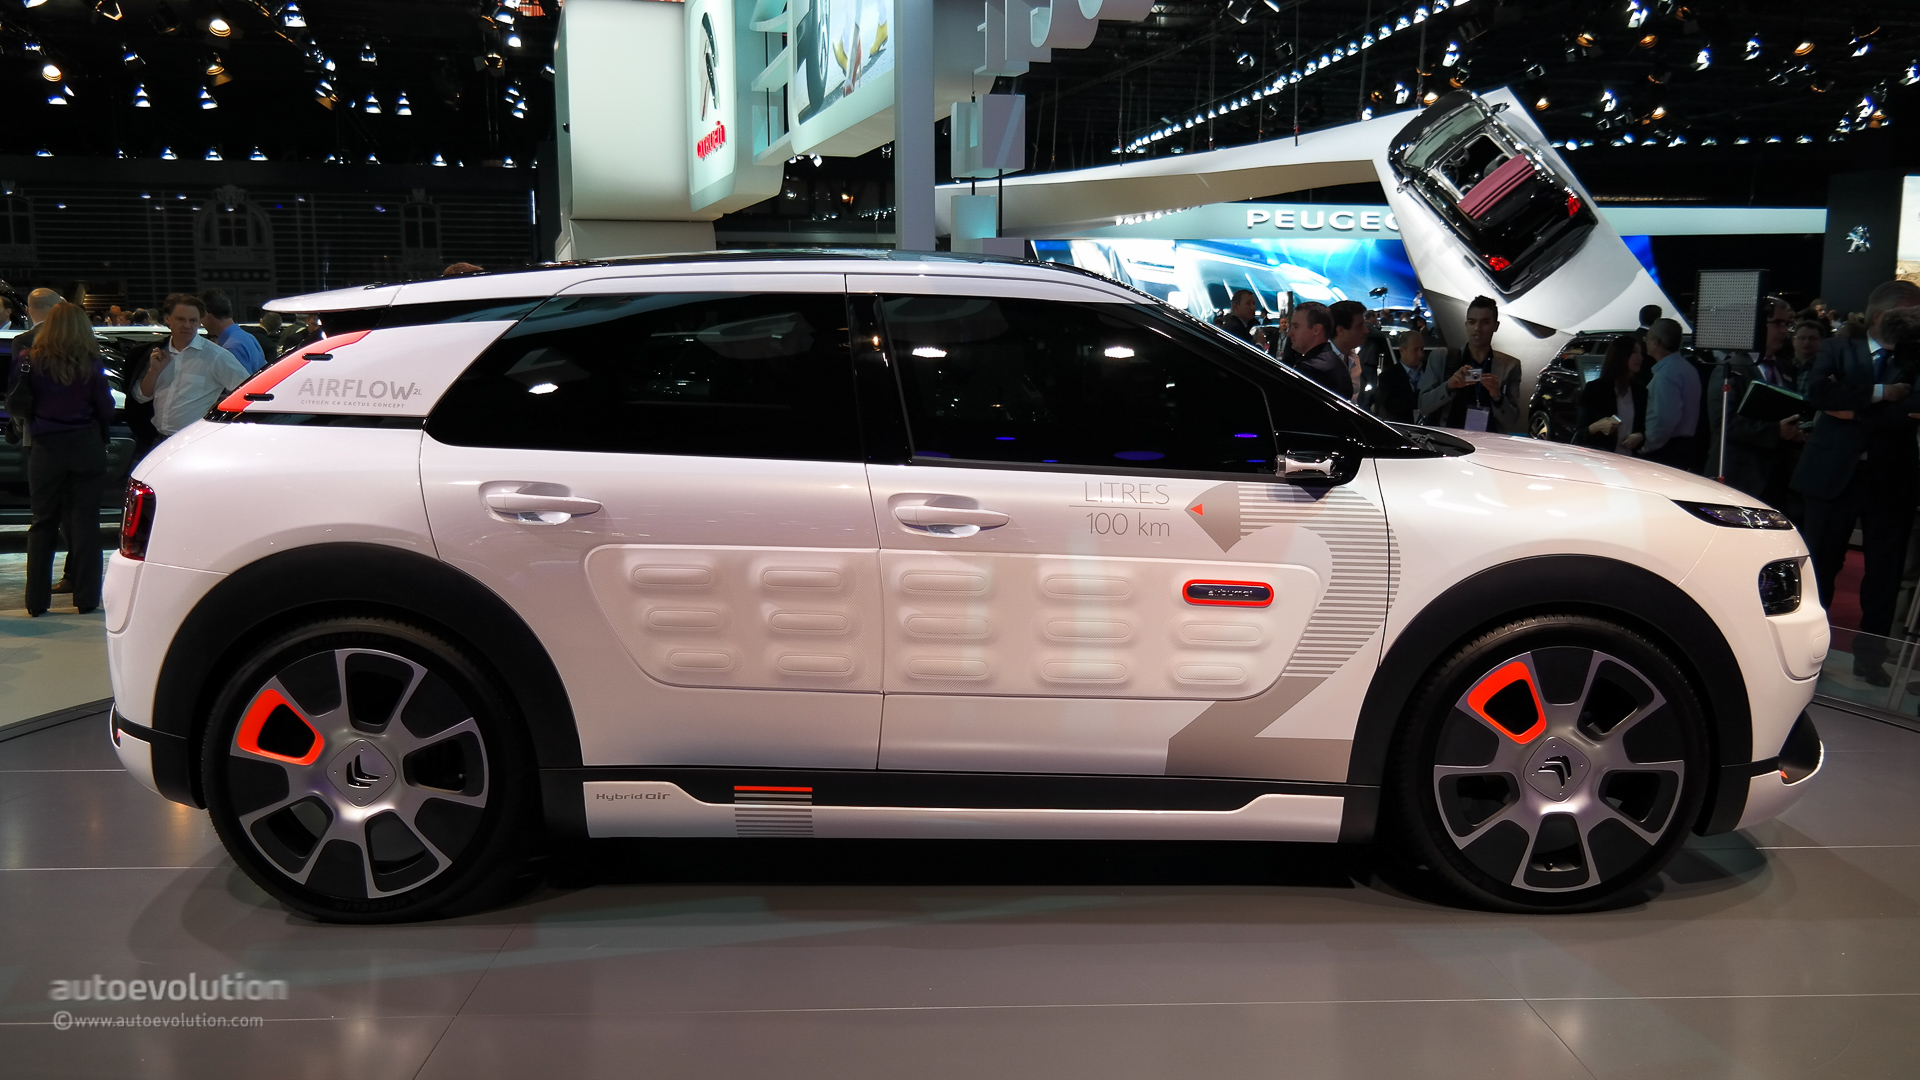 Citroen C4 Cactus Airflow 2l Concept Hisses At Paris 2014